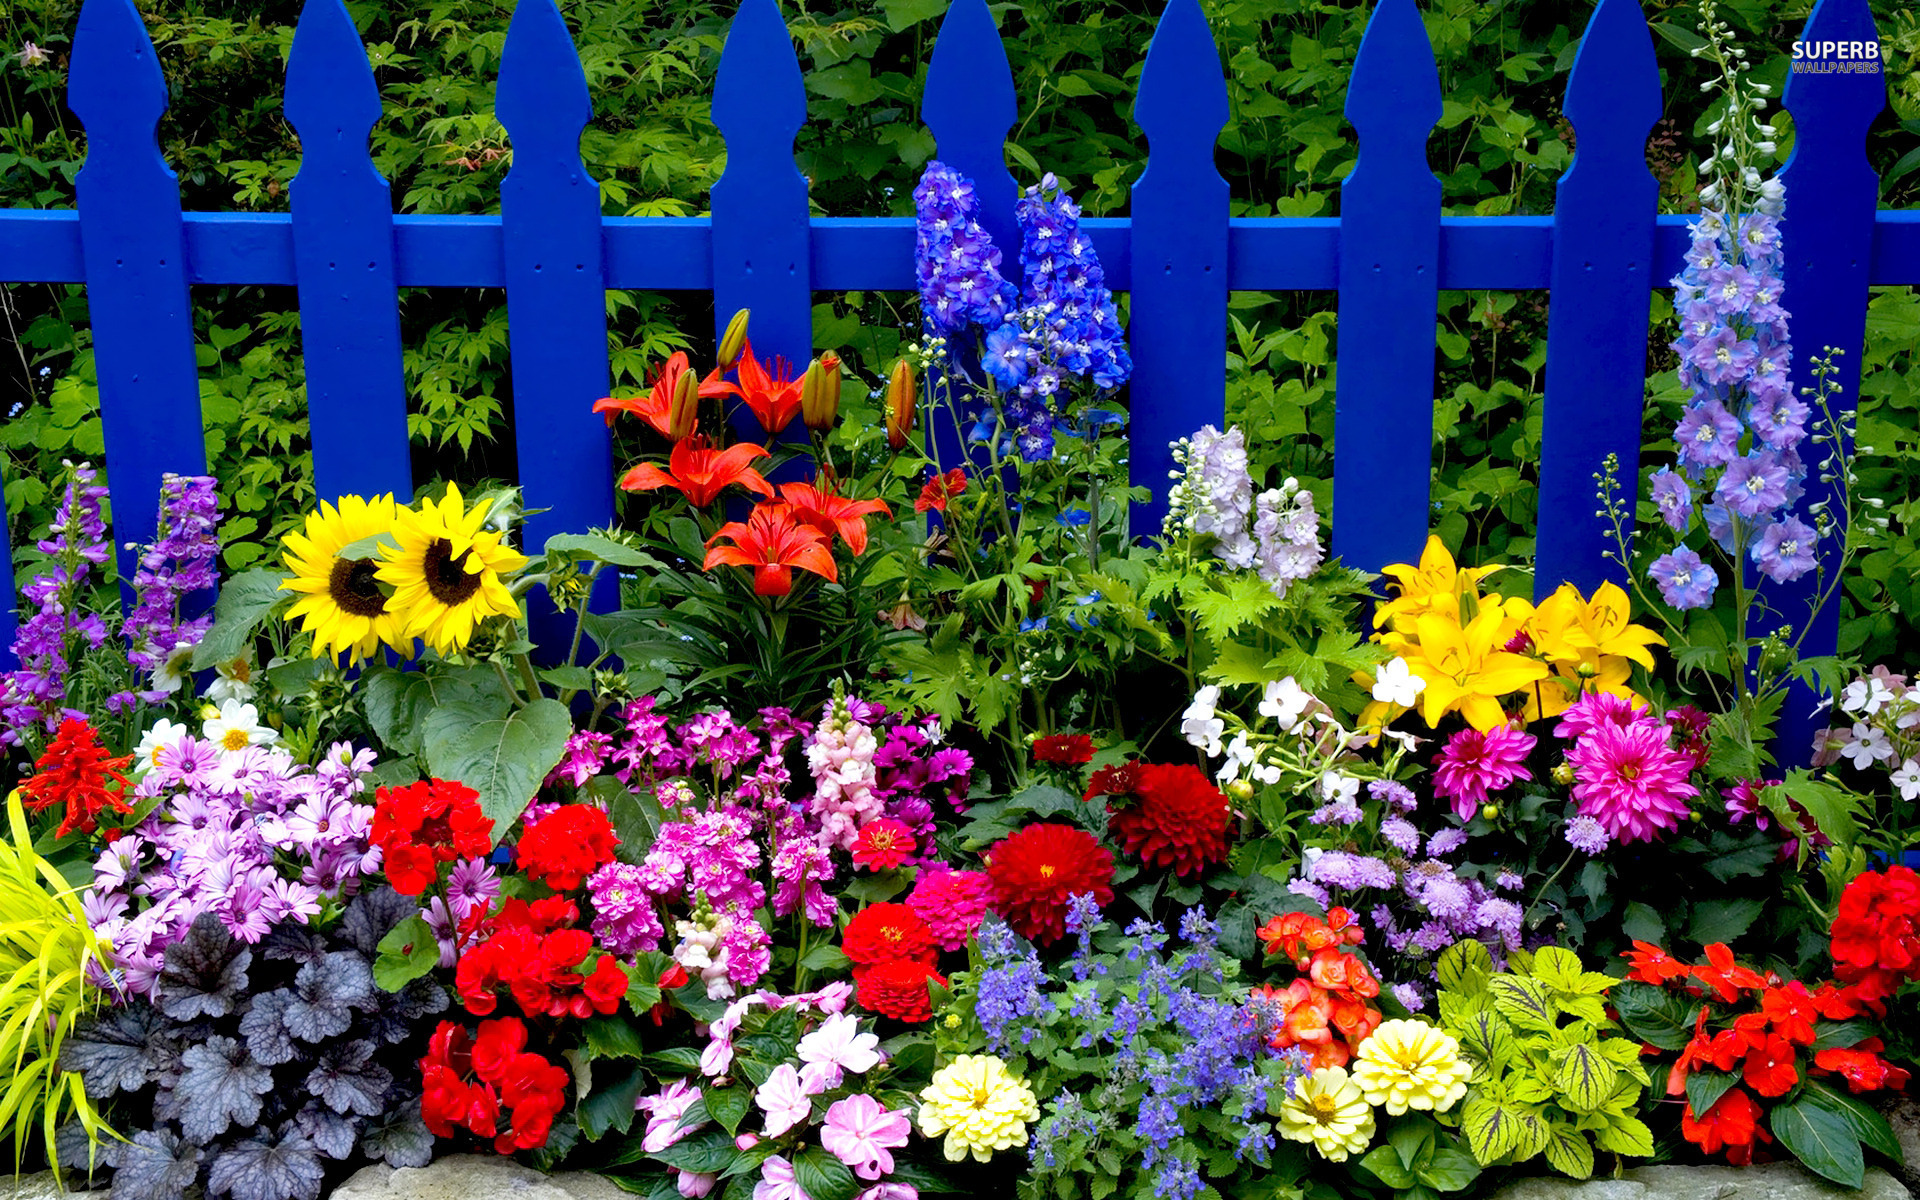 Summer Flowers wallpaper 1920x1200 71955 WallpaperUP 1920x1200